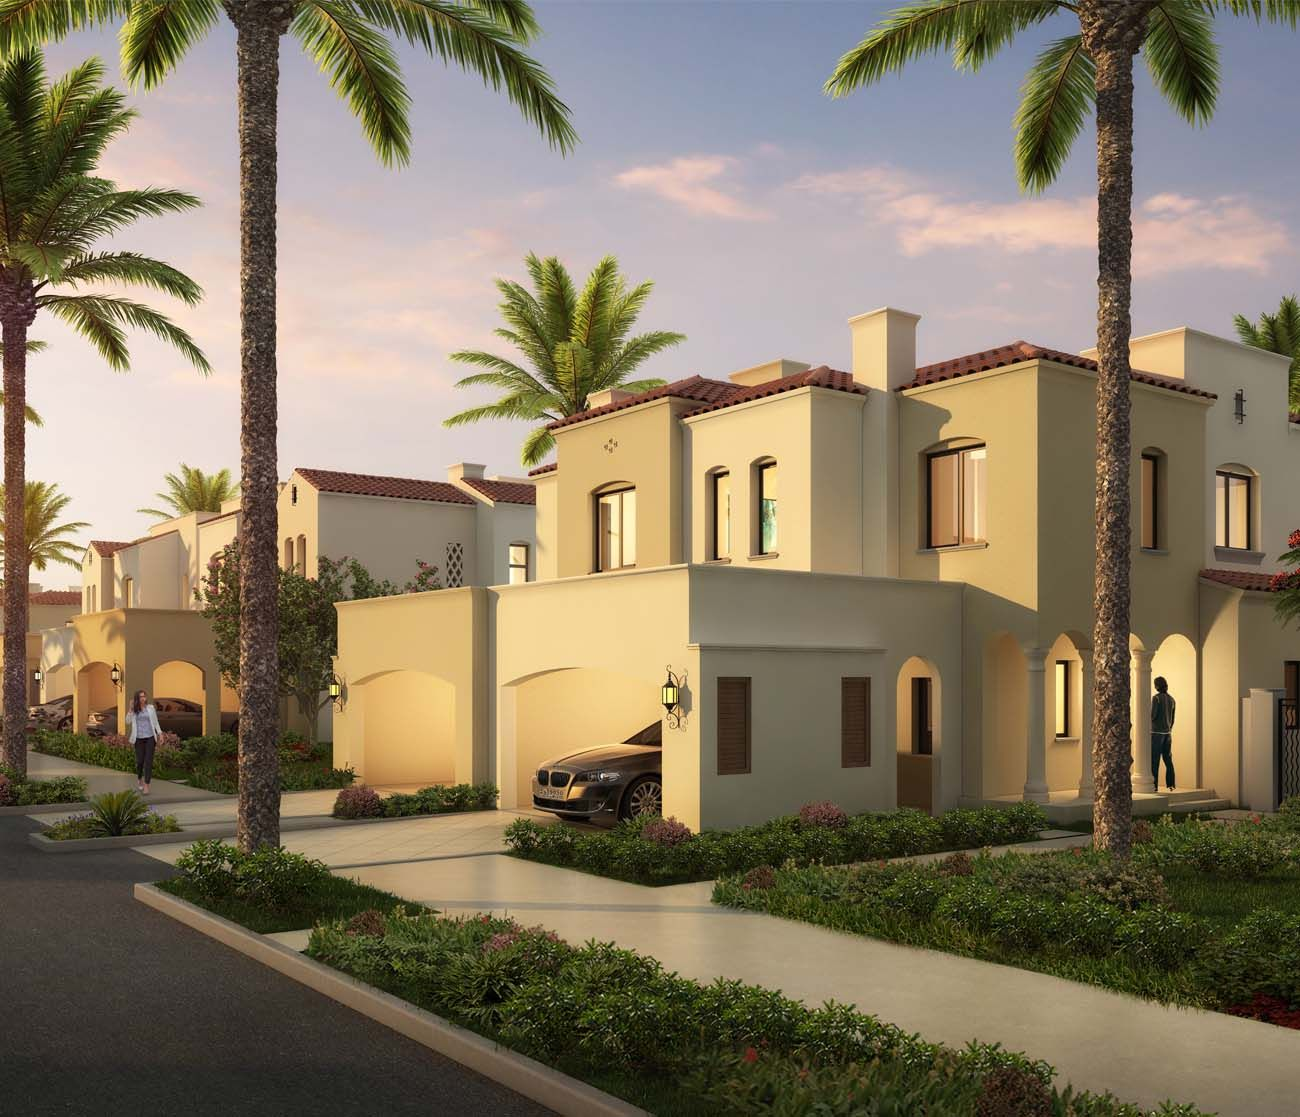 3 Bedroom Townhouses – Middle  - Casa Viva at Serena - For Sale